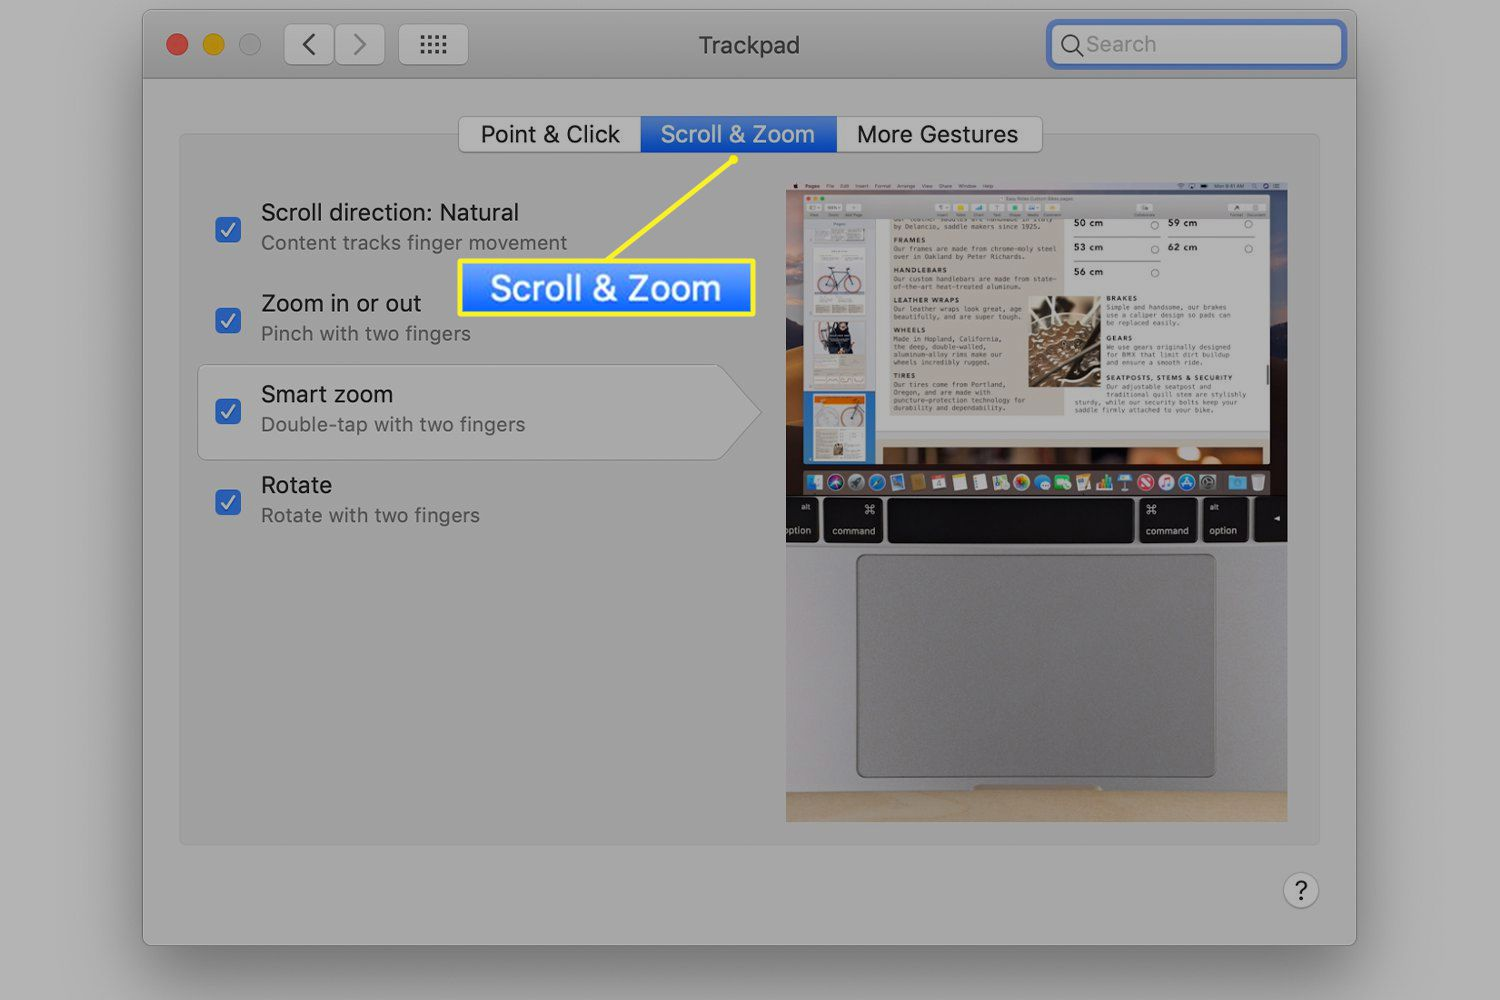 Trackpad preferences with Scroll & Zoom tab selected